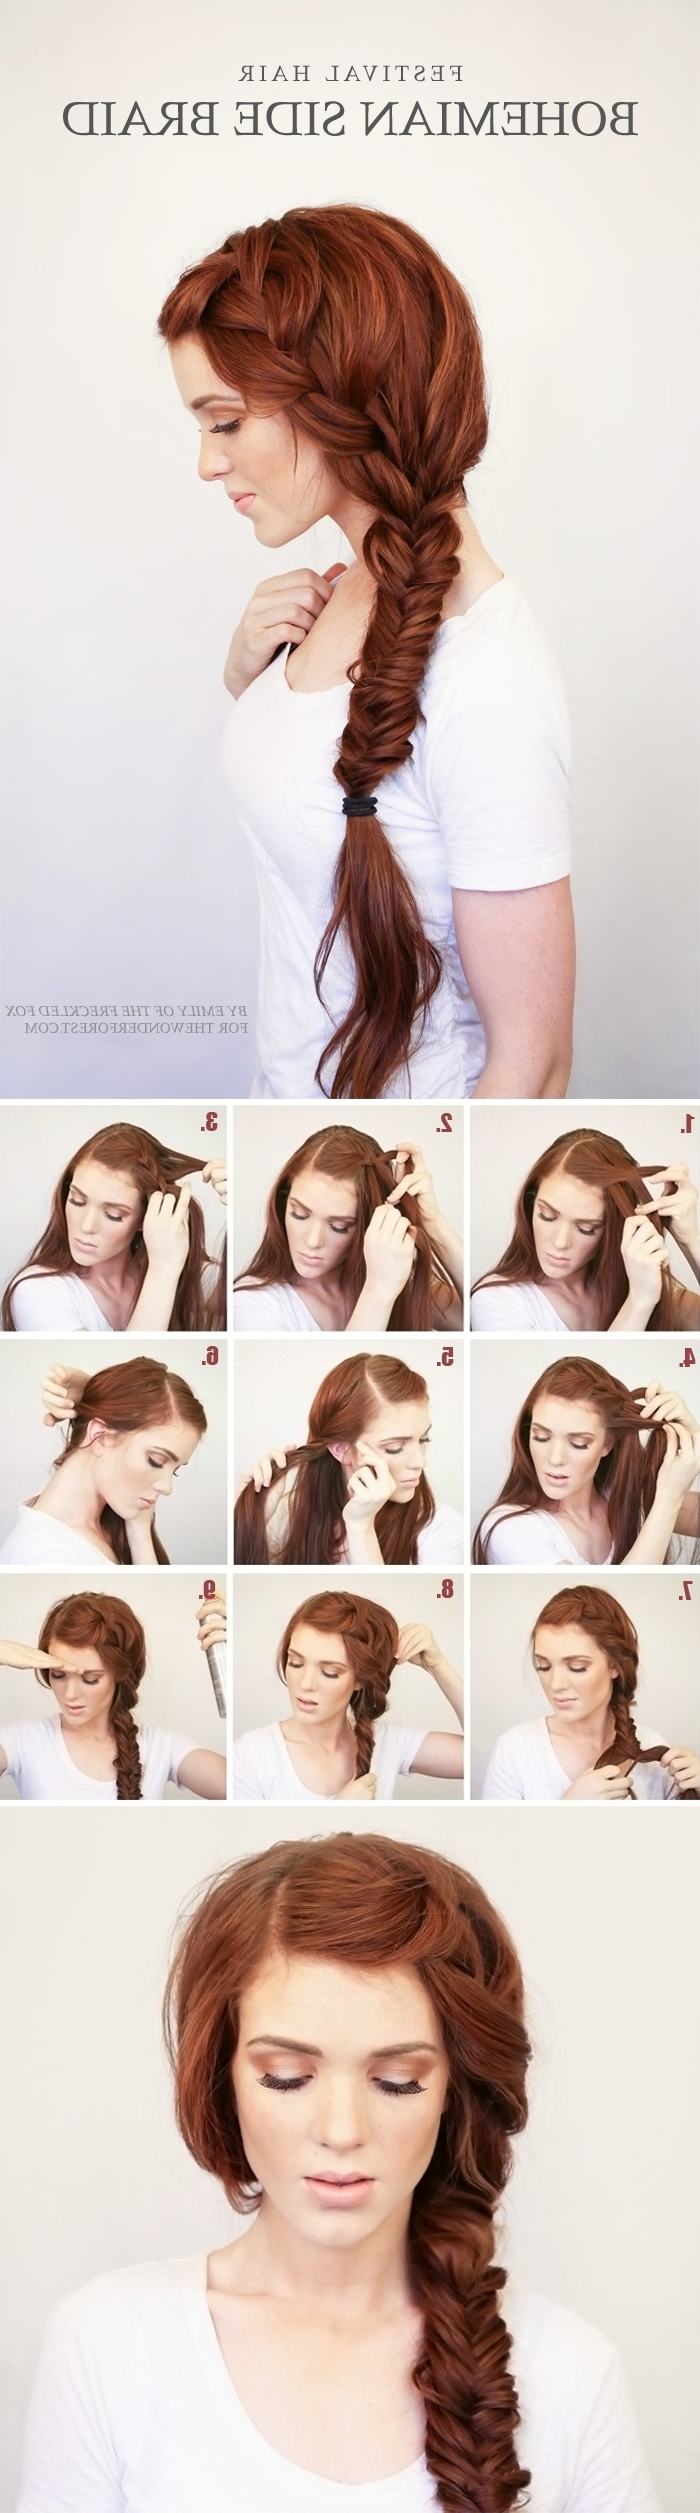 Tulle & Chantilly With Popular Diy Simple Wedding Hairstyles For Long Hair (View 15 of 15)